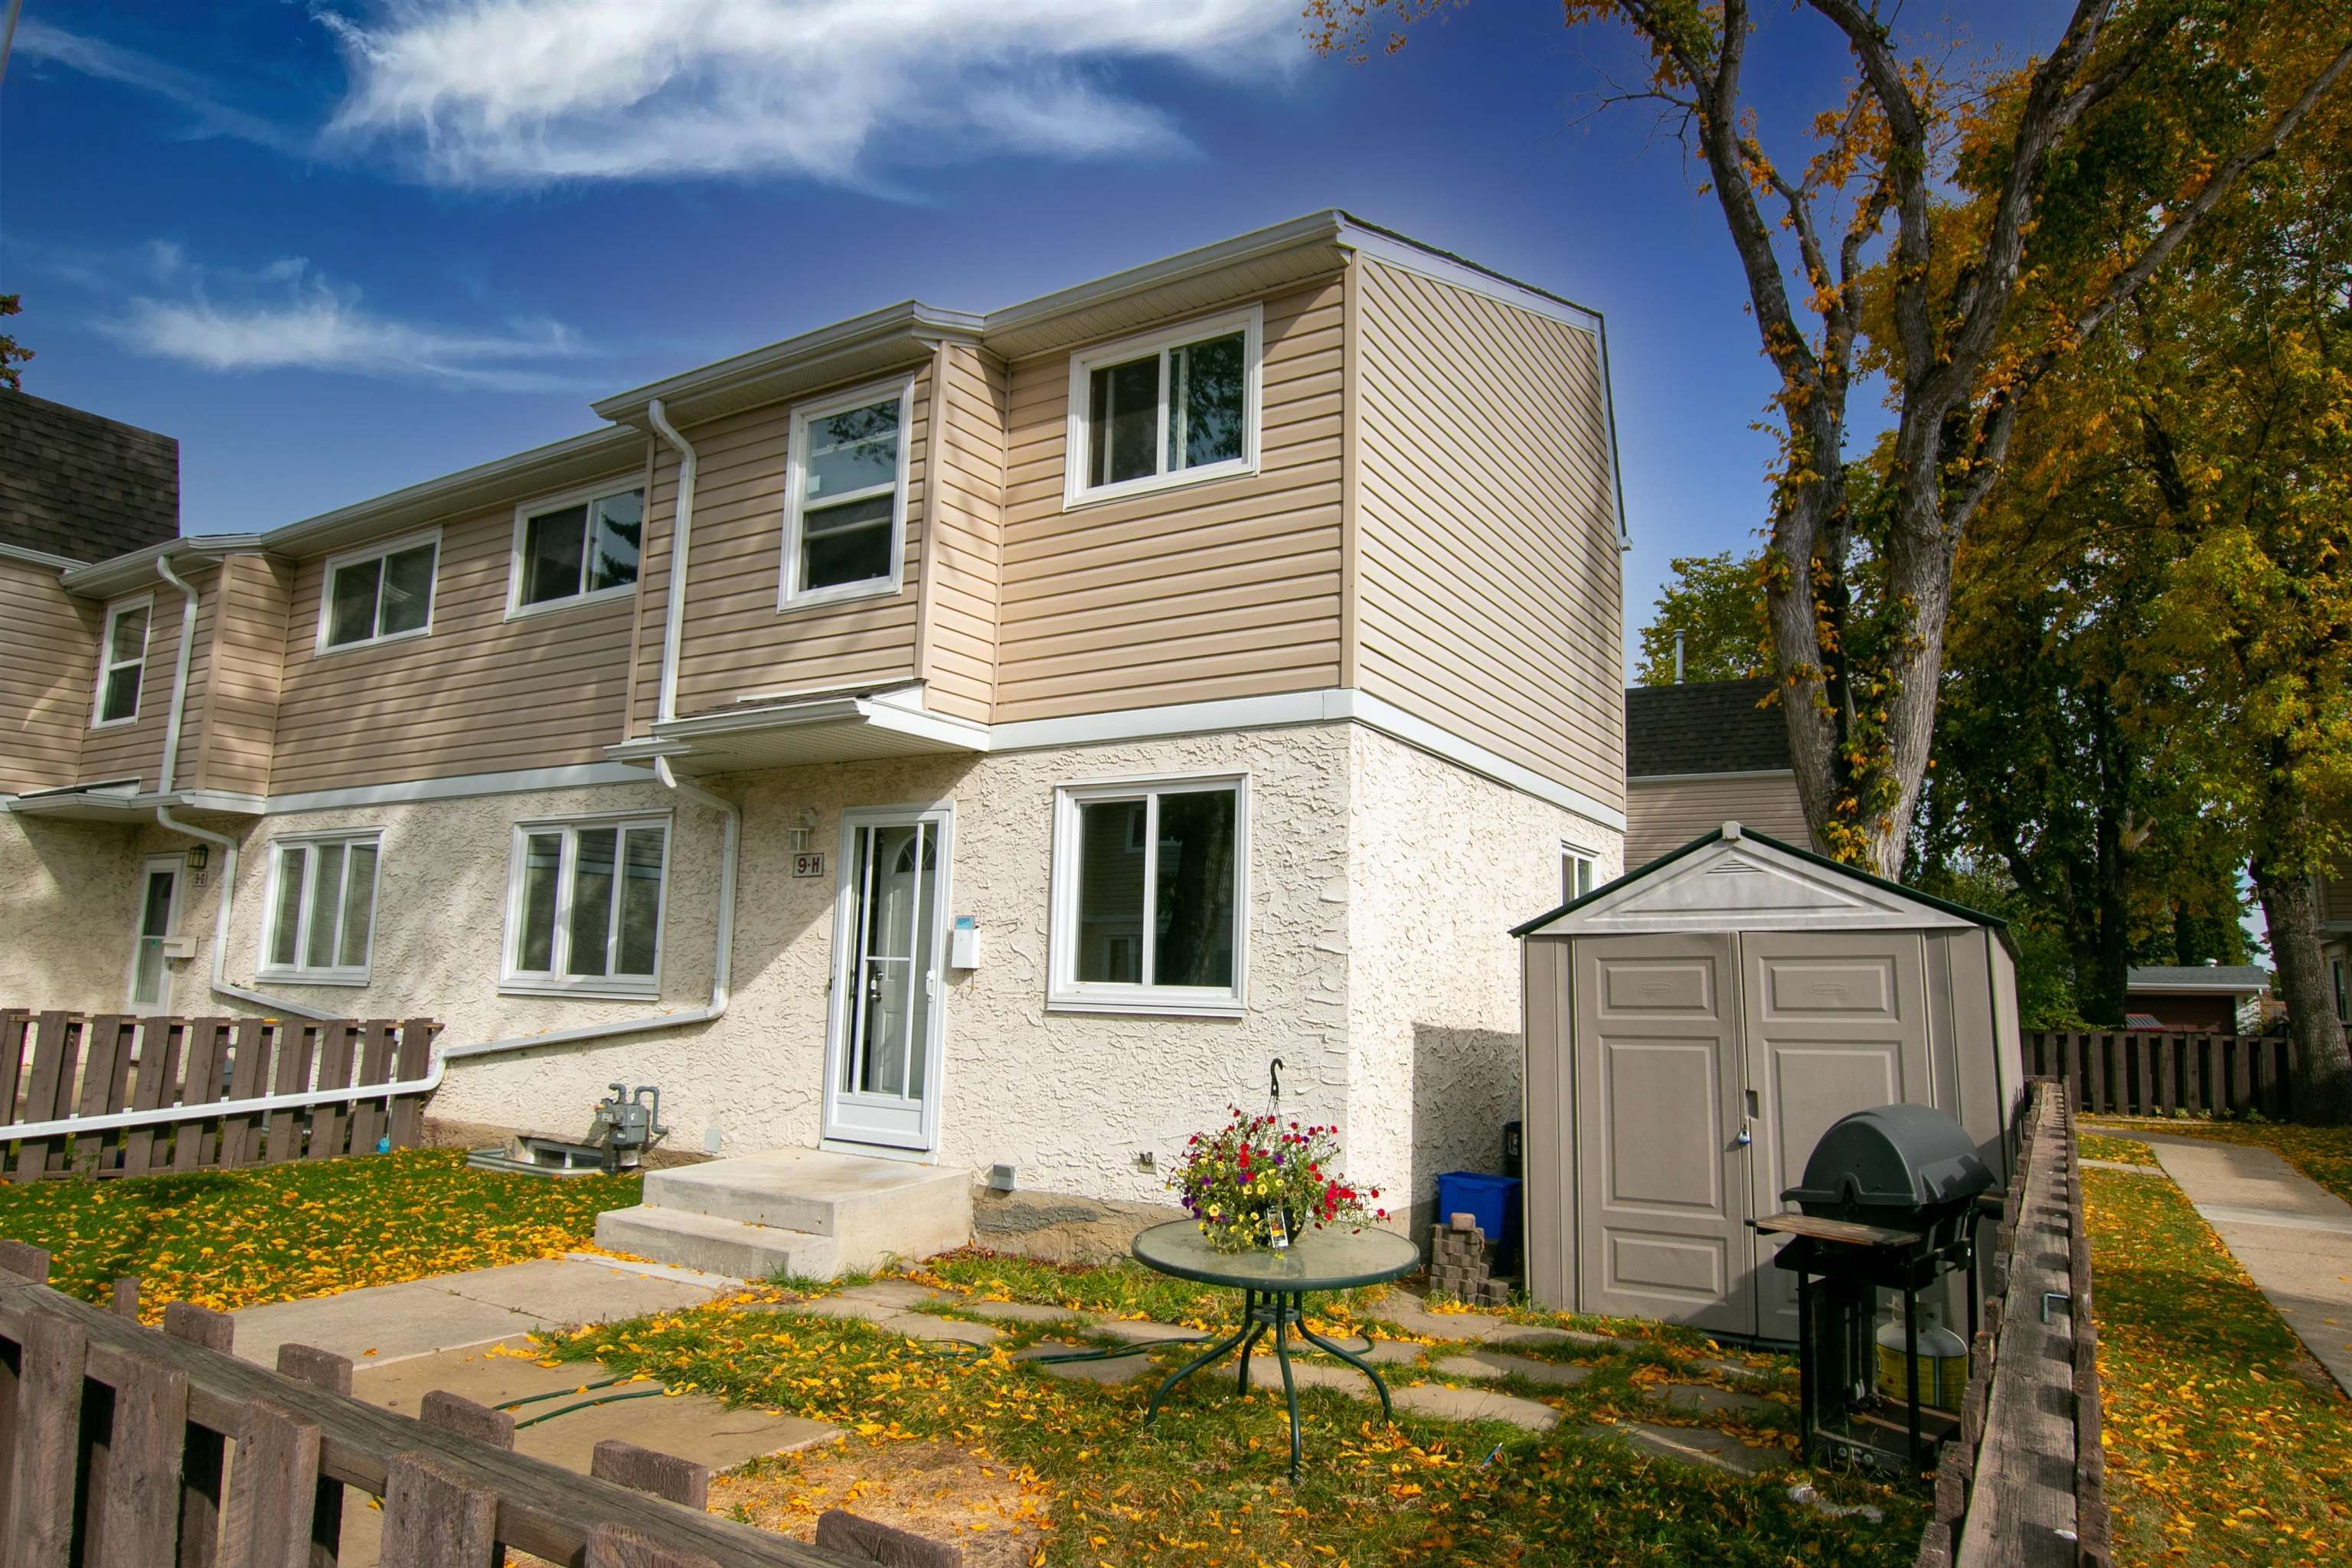 Main Photo: 9H CLAREVIEW Village in Edmonton: Zone 35 Townhouse for sale : MLS®# E4265629